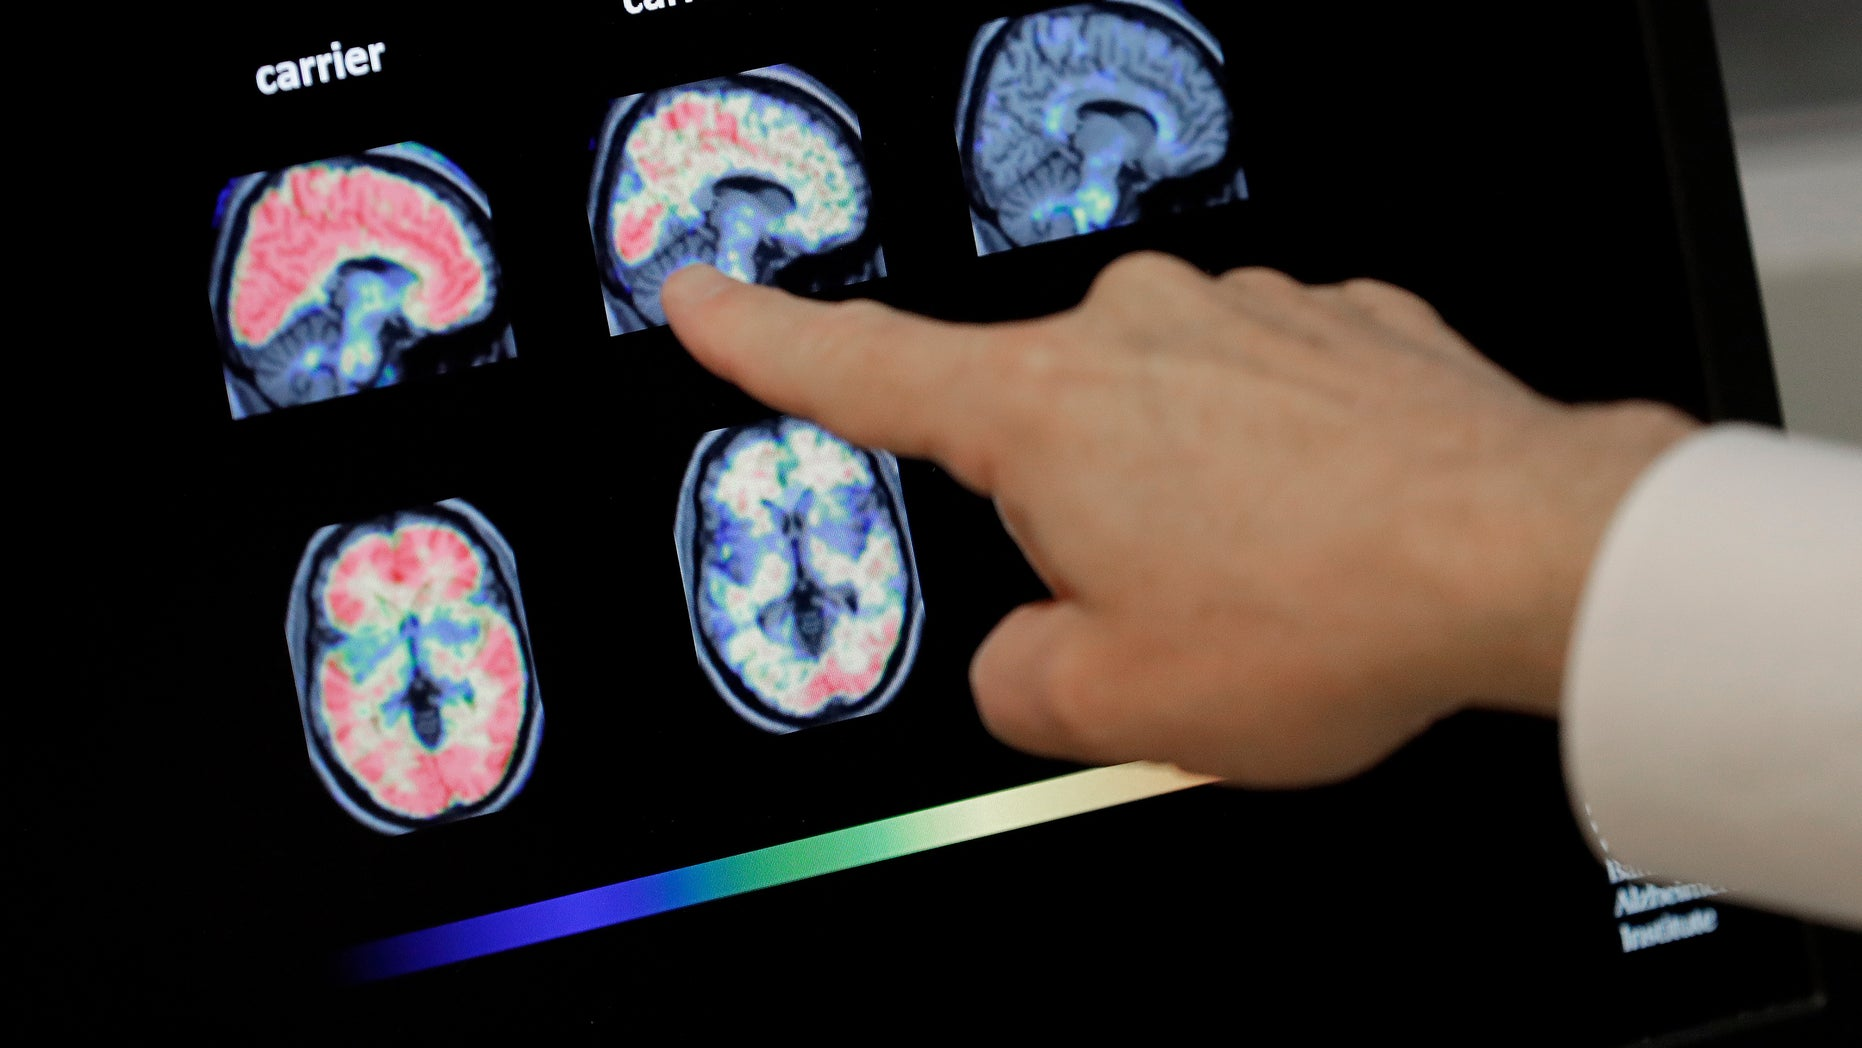 Banner Alzheimers Institute in Phoenix is conducting two studies that target the very earliest brain changes while memory and thinking skills are still intact in hope of preventing the disease.